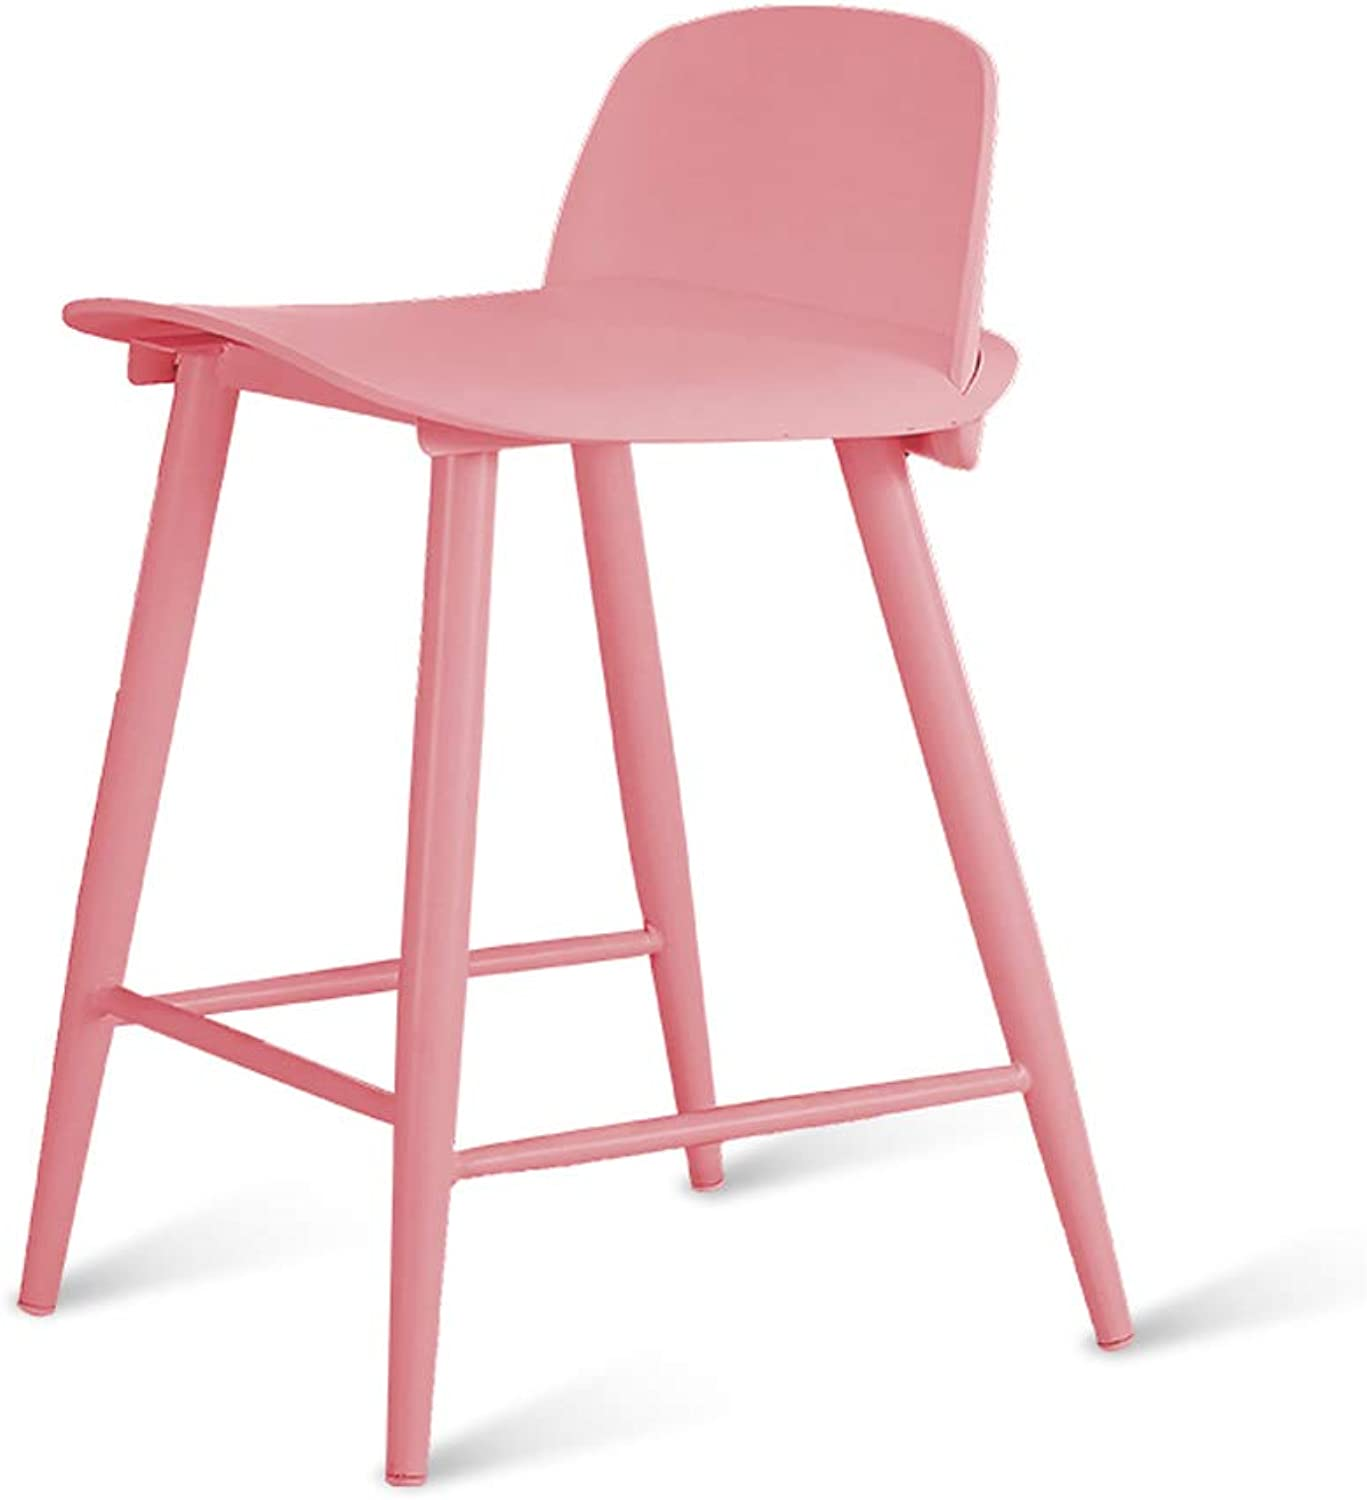 Jiu Si- Nordic Bar Chair Cafe Bar Desk Chair Back Bar Stool Bar High Stool Beauty Chair Hairdressing Chair High Stool bar Chair (color   Pink, Size   Seat Height 60)